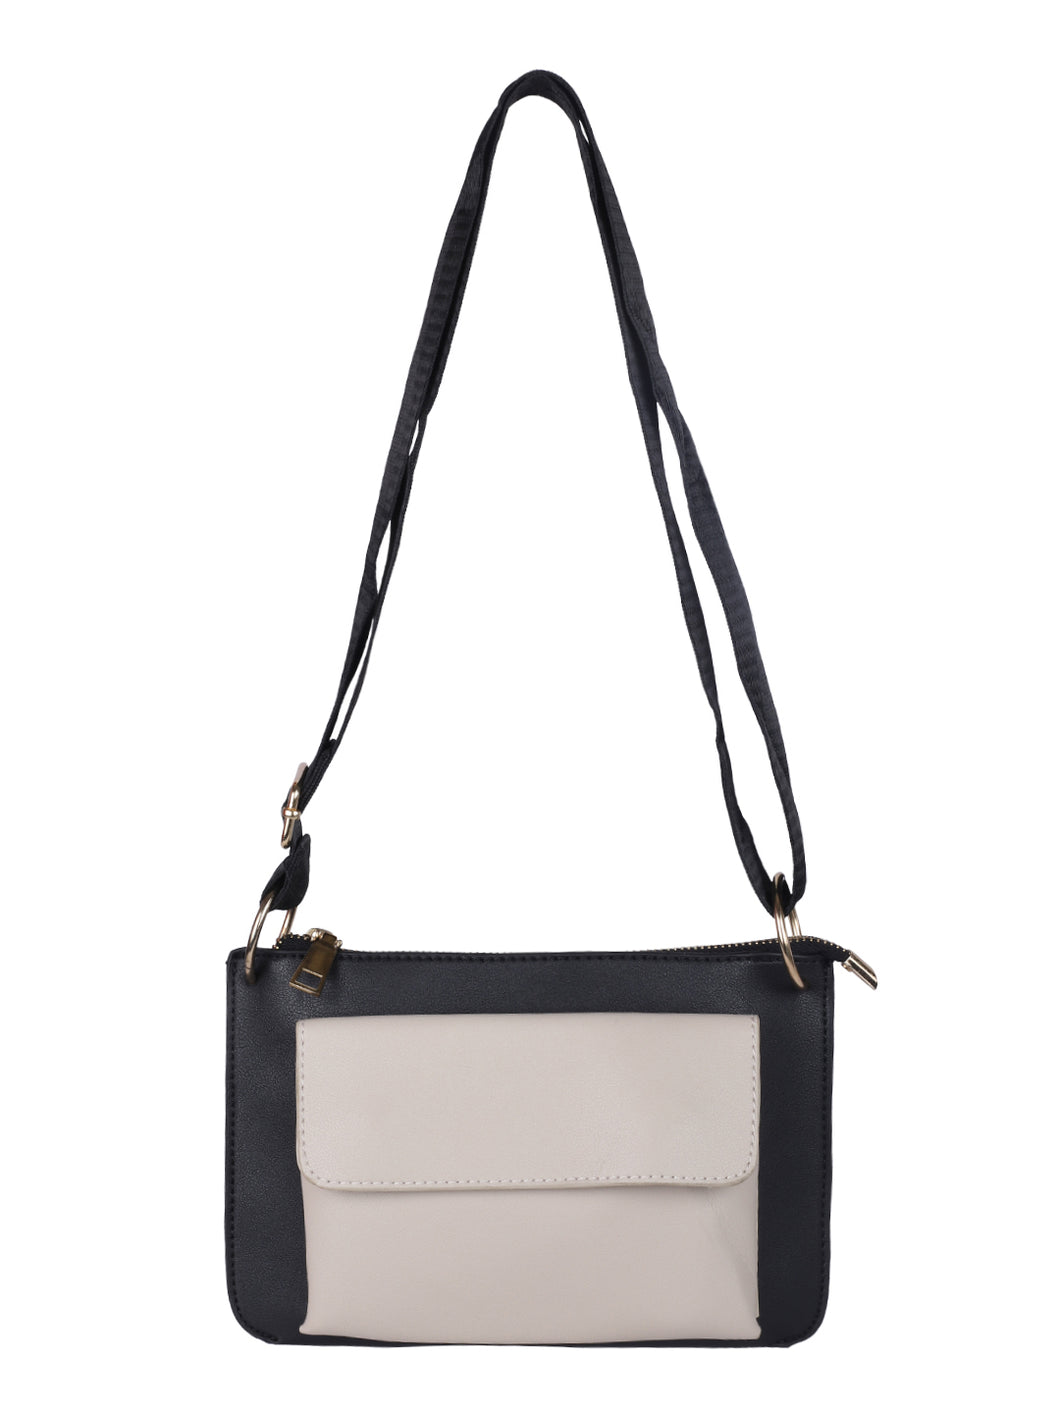 Two-toned Envelope Sling